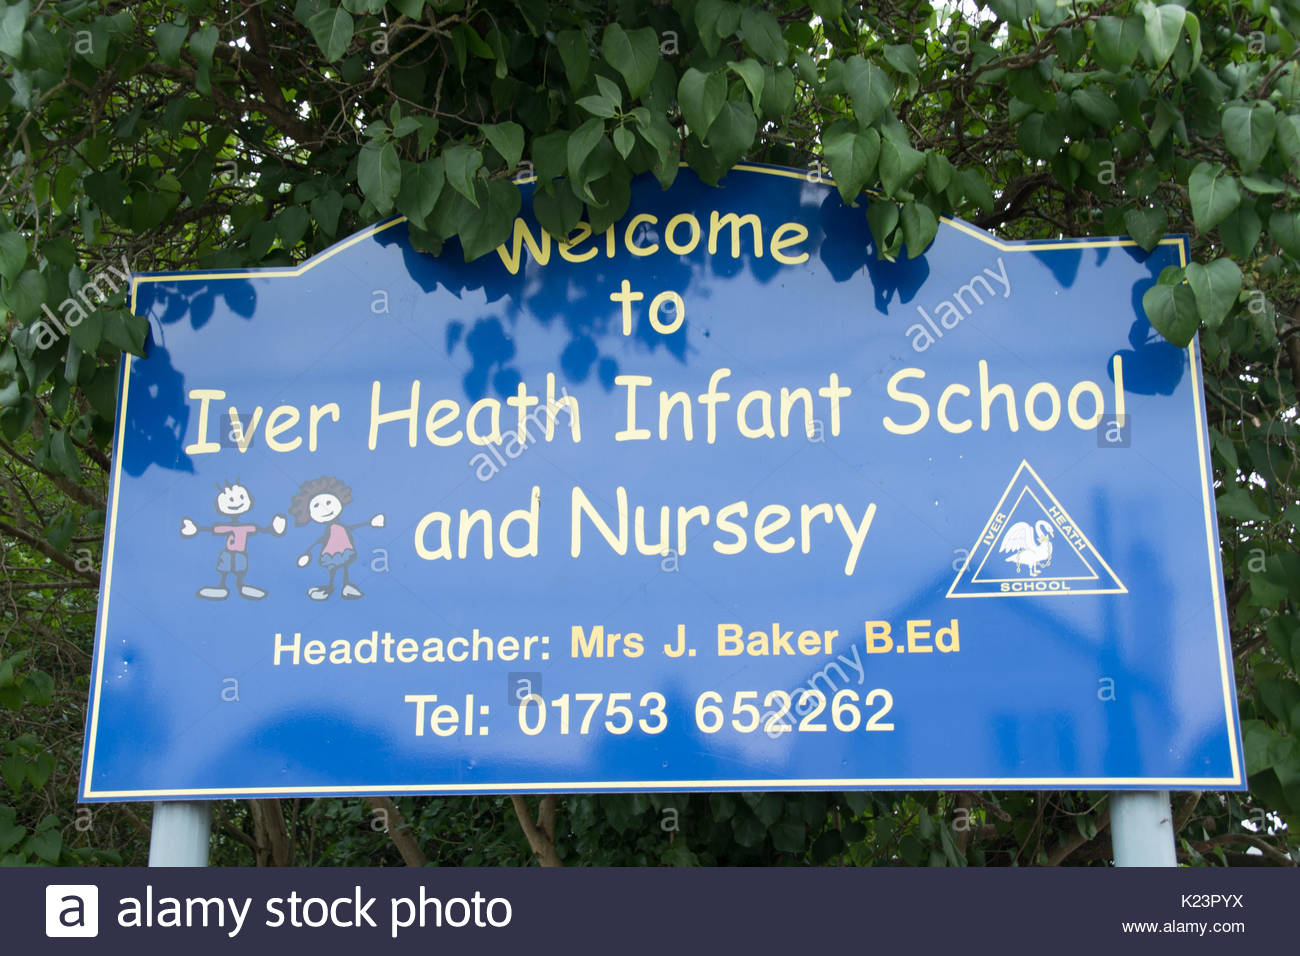 Iver Heath Infant School